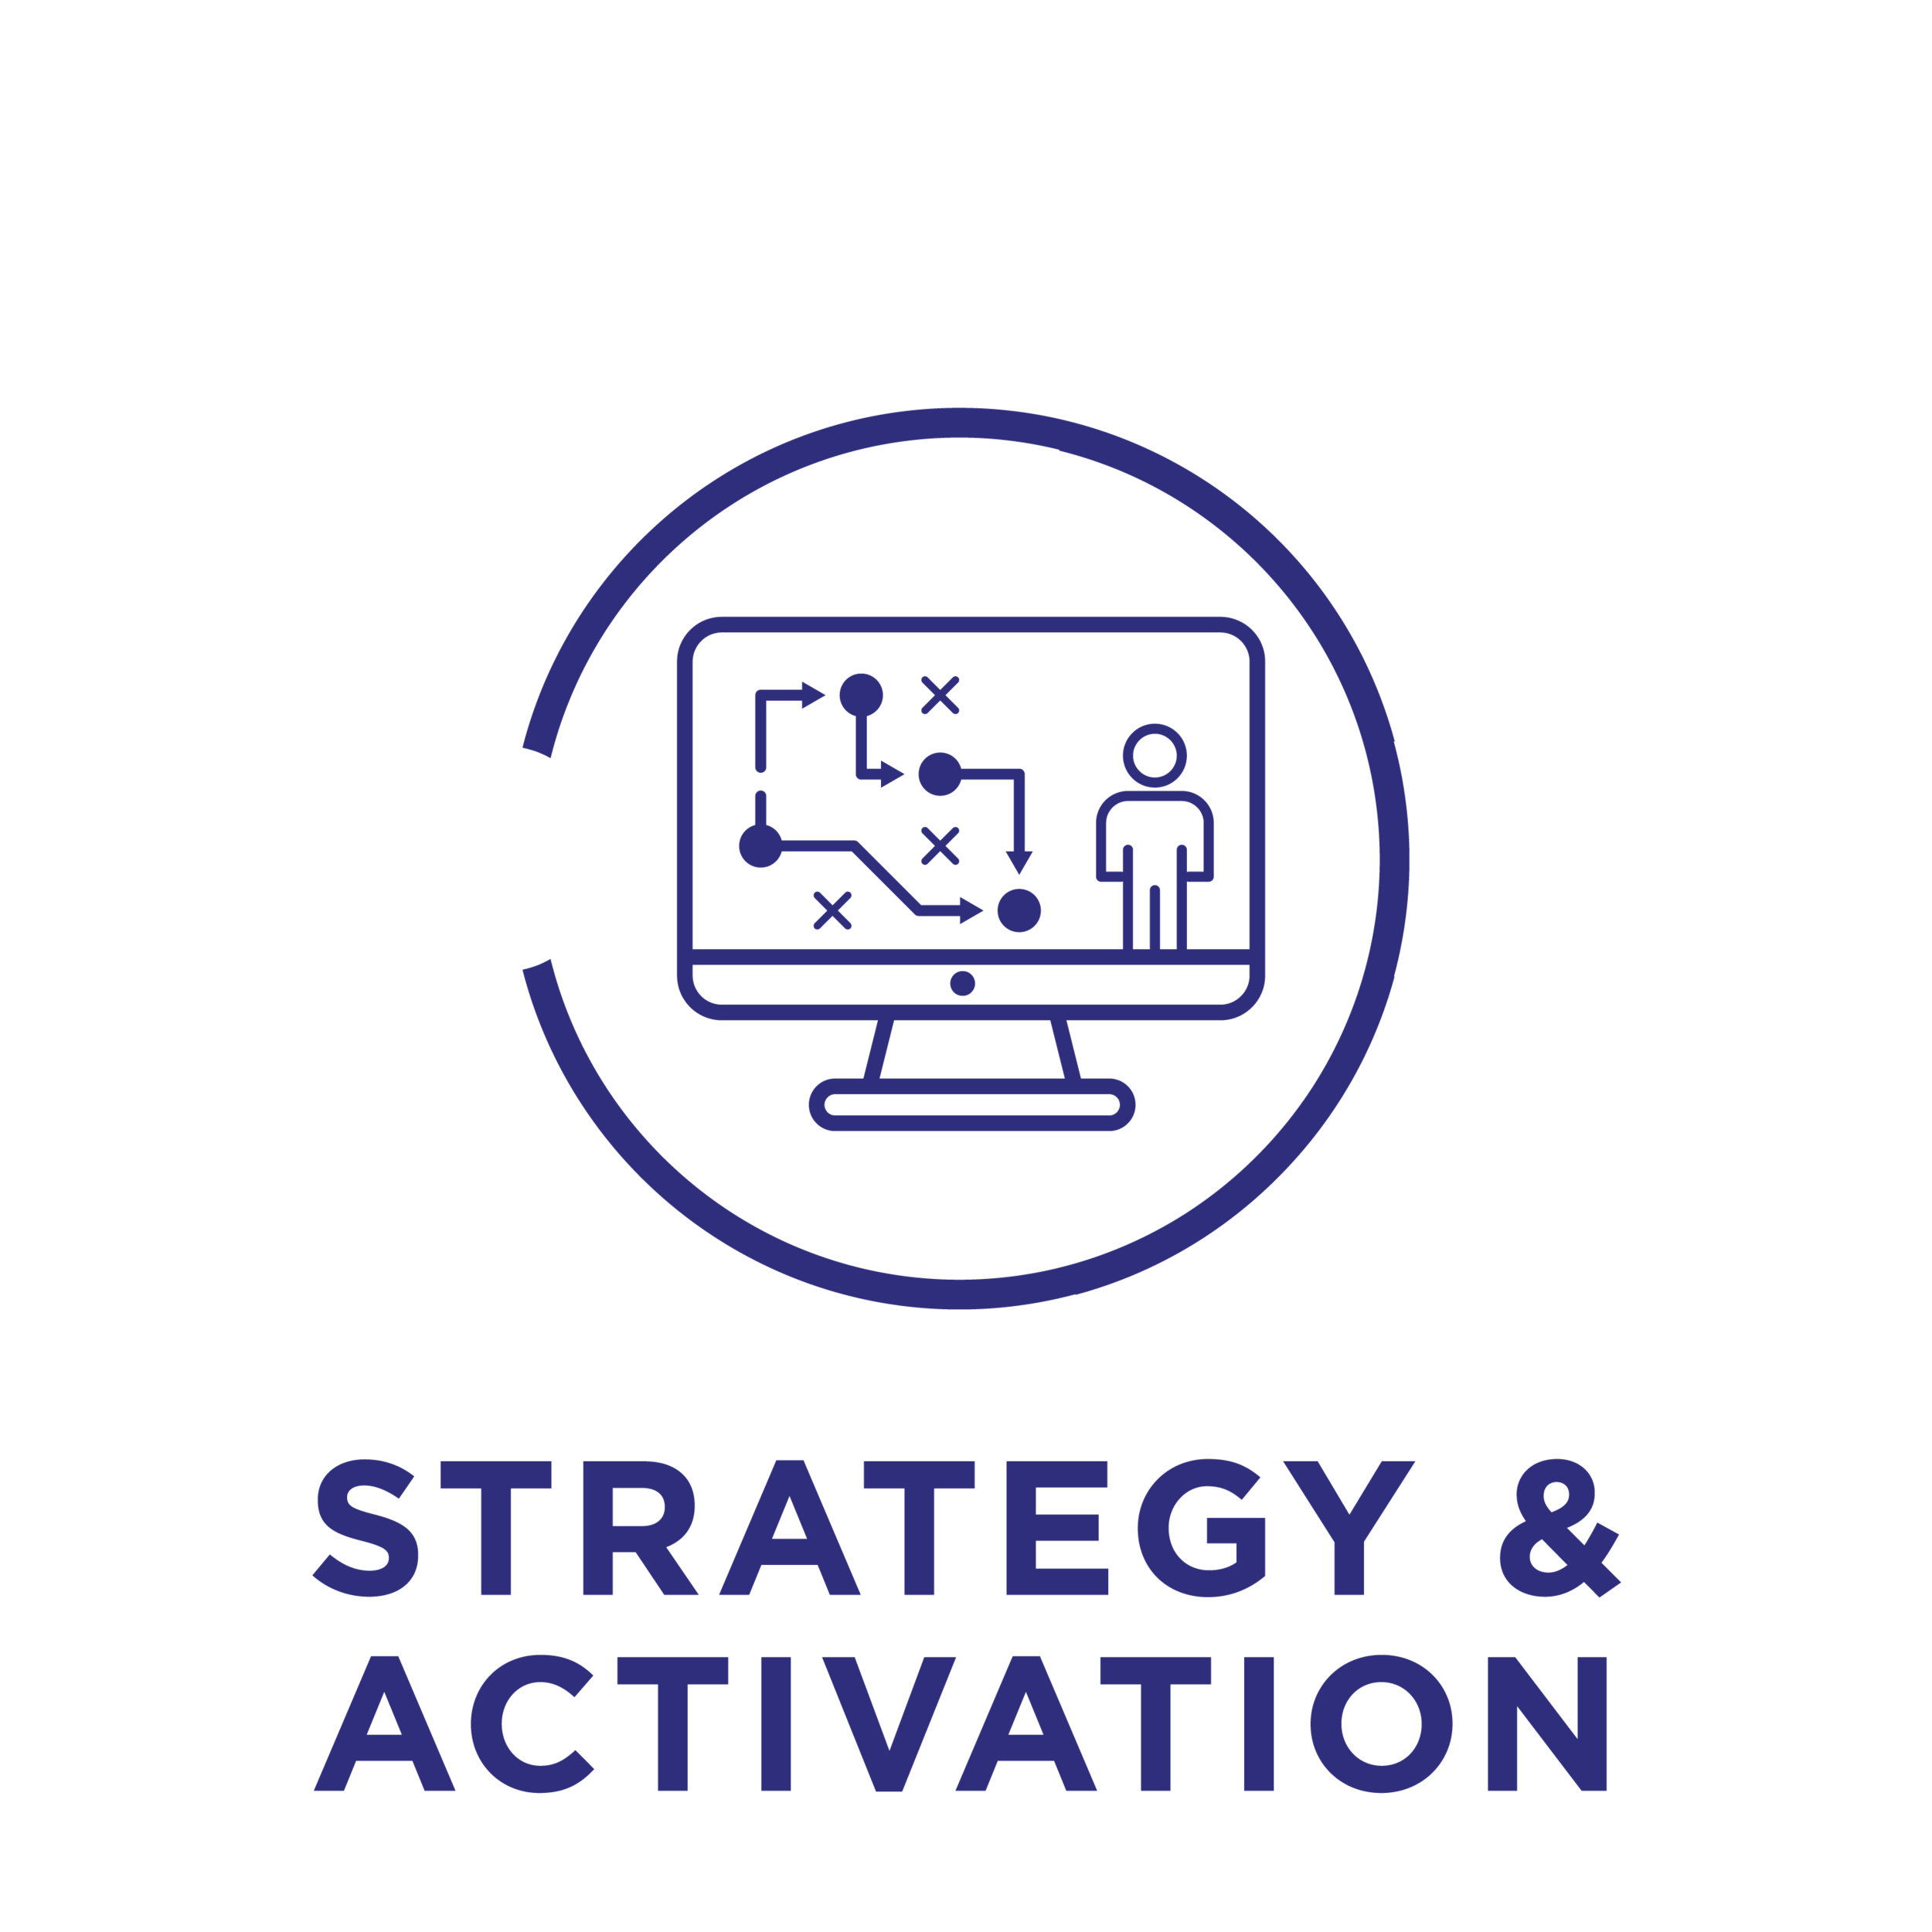 STRATEGY & ACTIVATION SOLUTIONS @BLEND360.COM